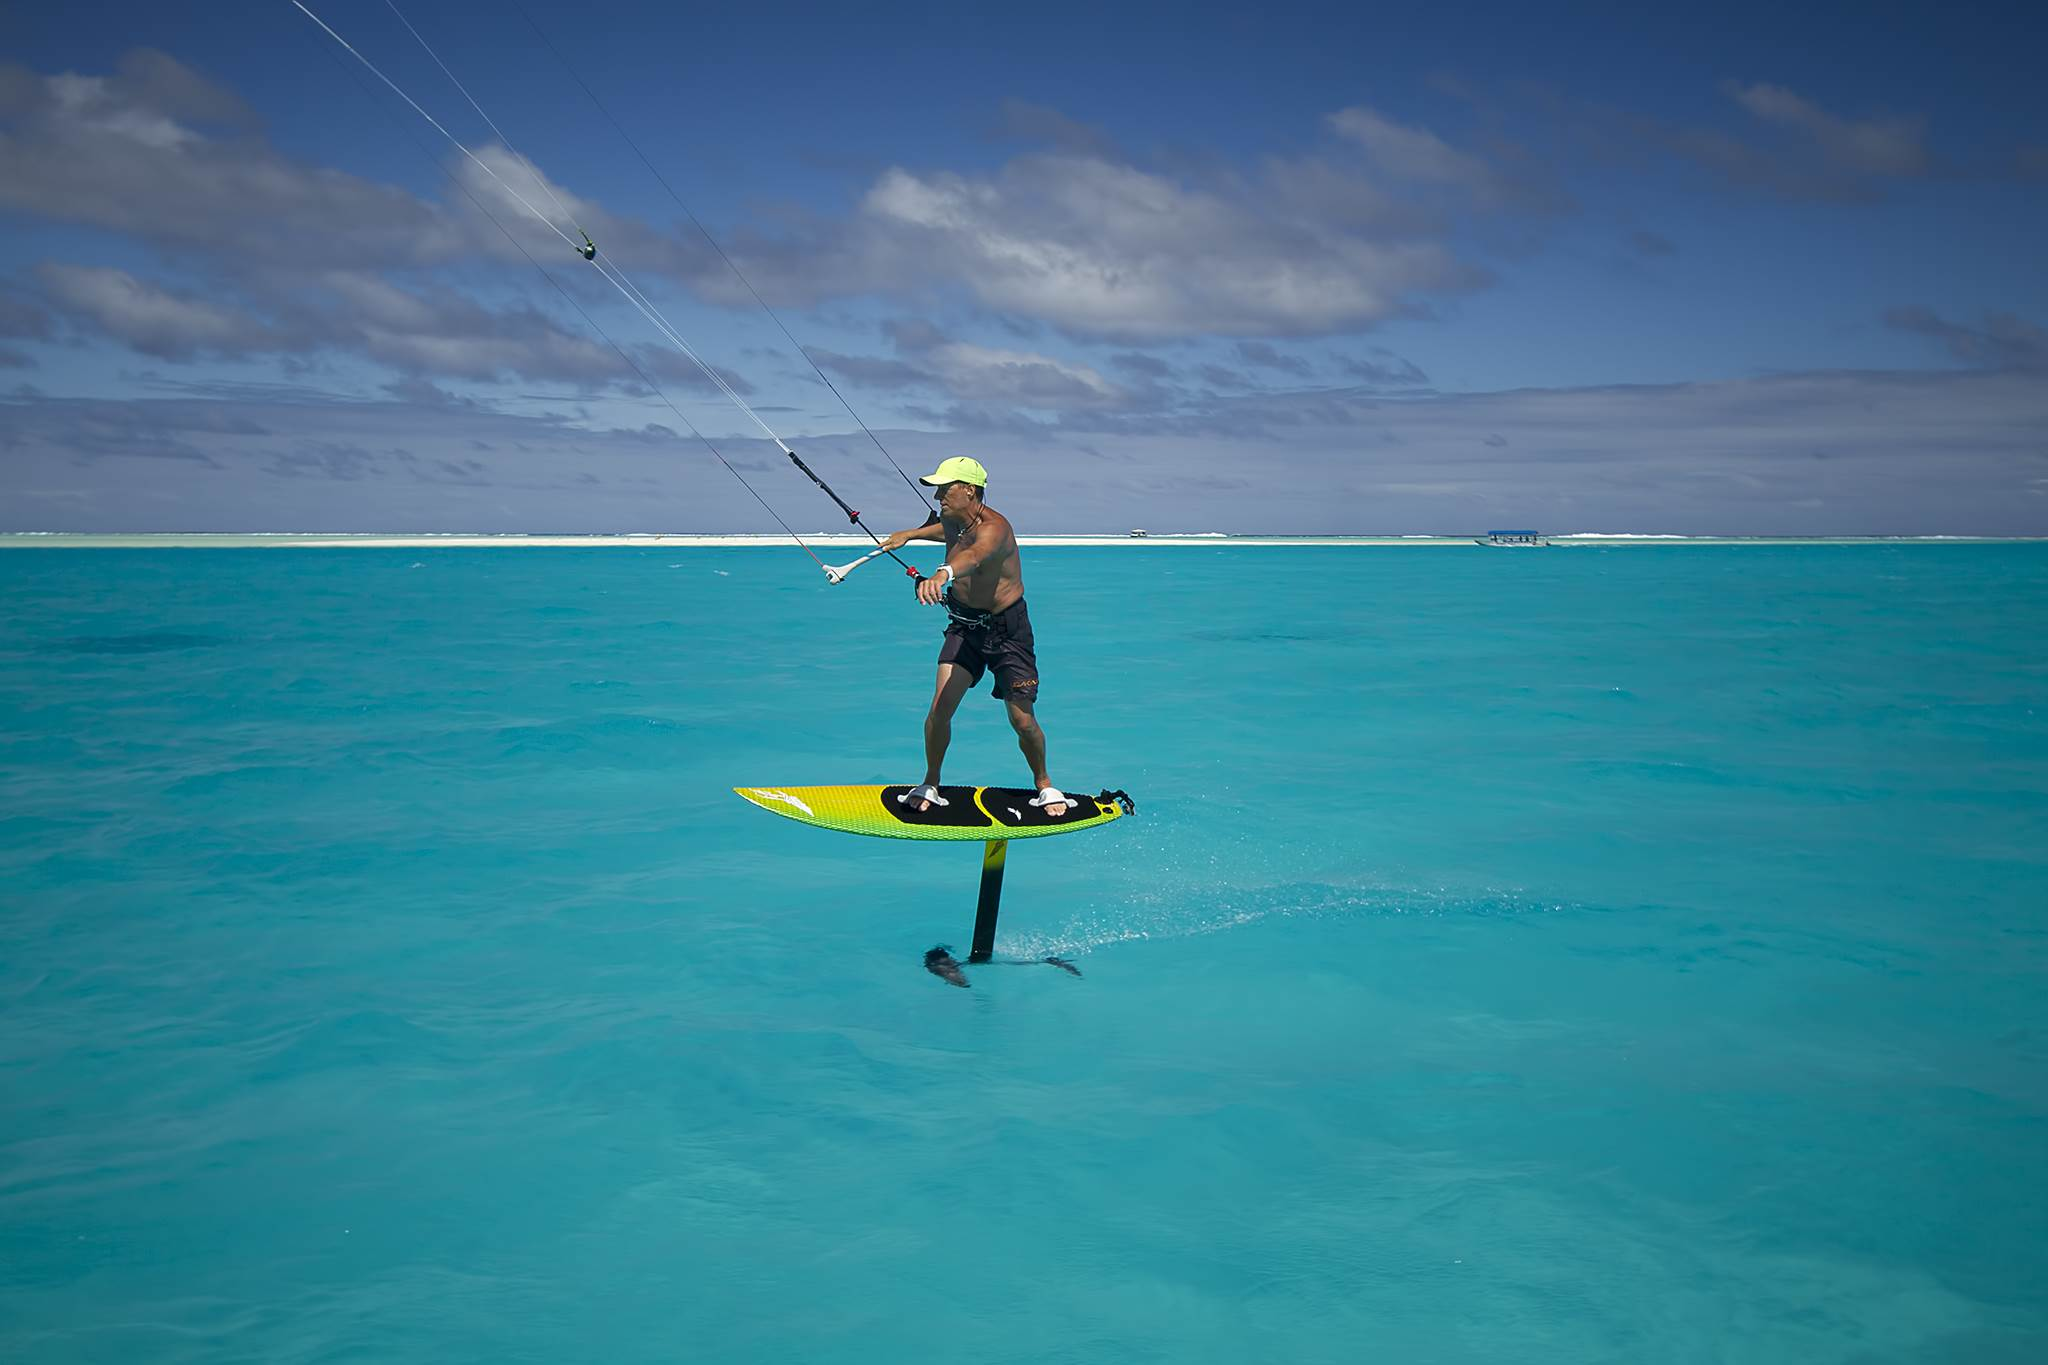 Cook Islands Kitesurfing Season